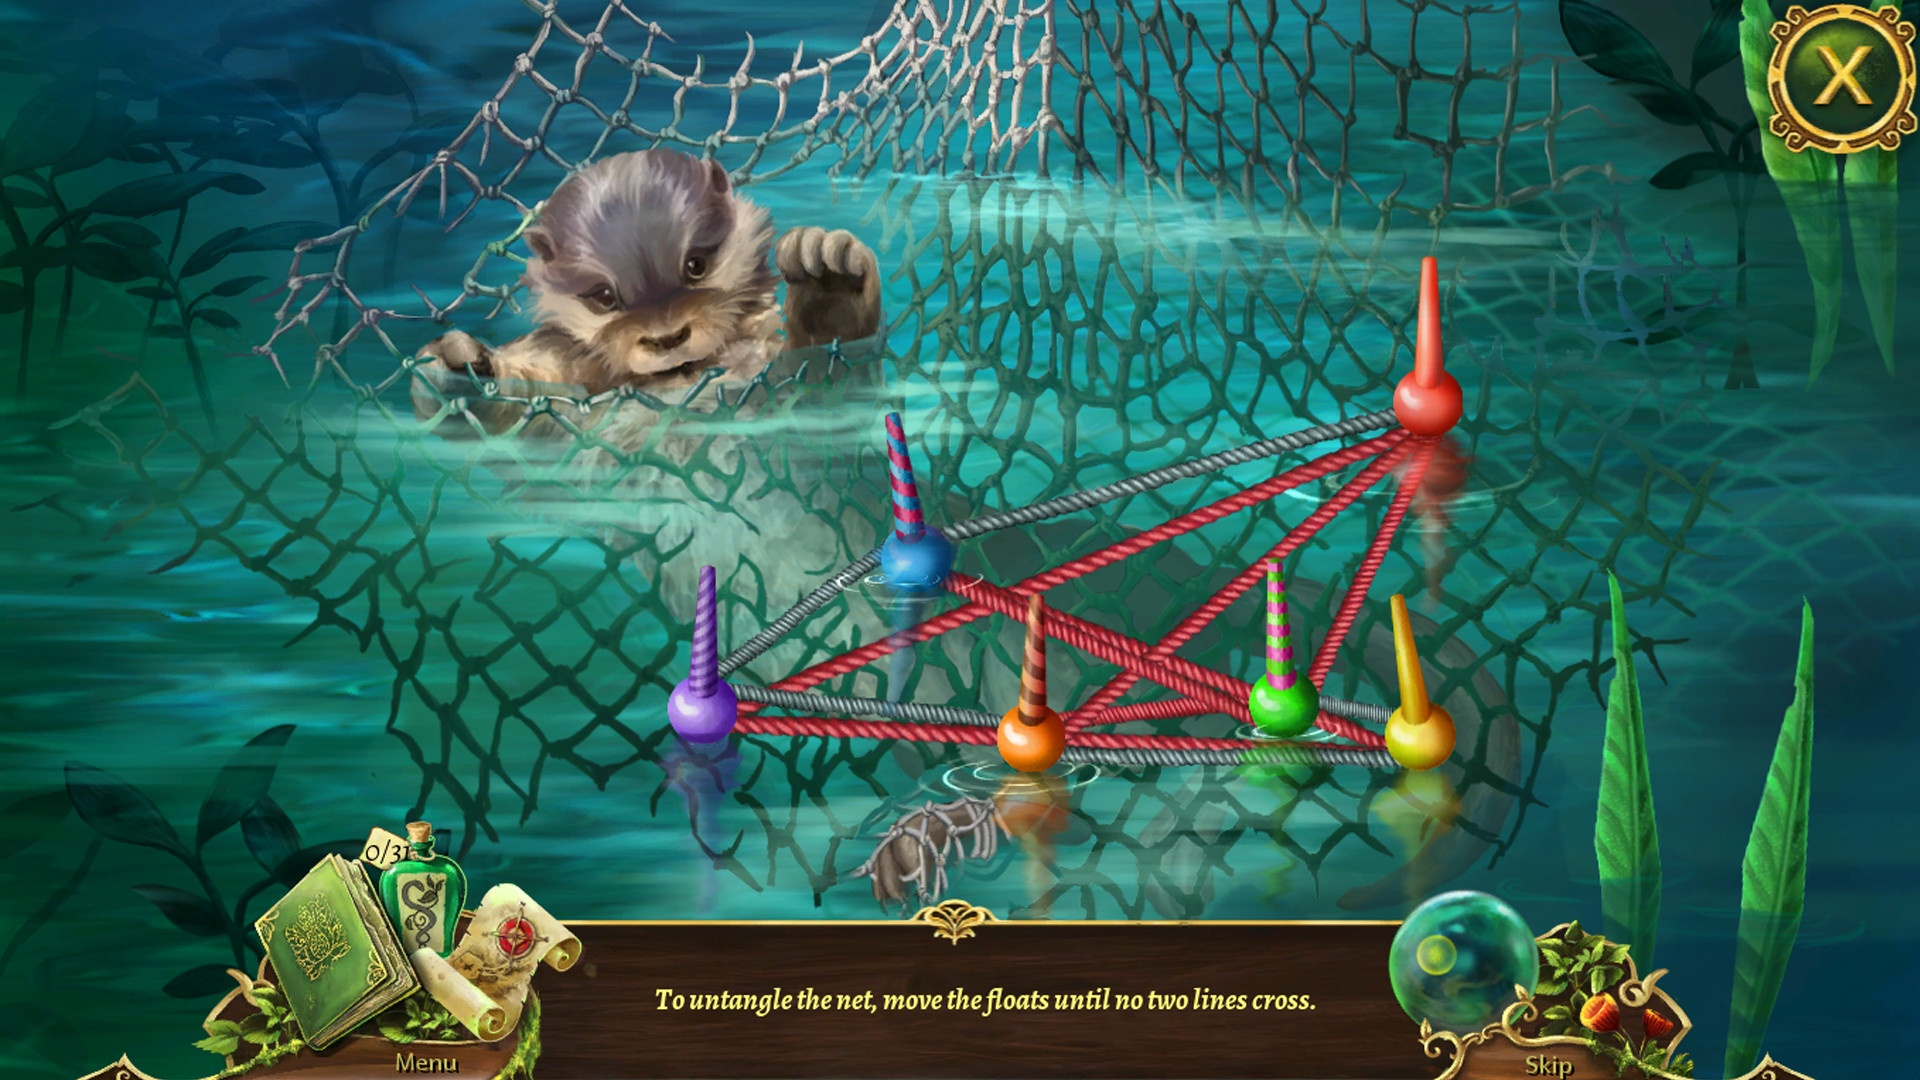 adventure, Artifex Mundi, Avanquest Software, Big Fish Games, casual, Grim Legends 2: Song of the Dark Swan, Grim Legends 2: Song of the Dark Swan Review, Hidden Object, Mystery, Point & Click, Puzzle, Xbox One, Xbox One Review